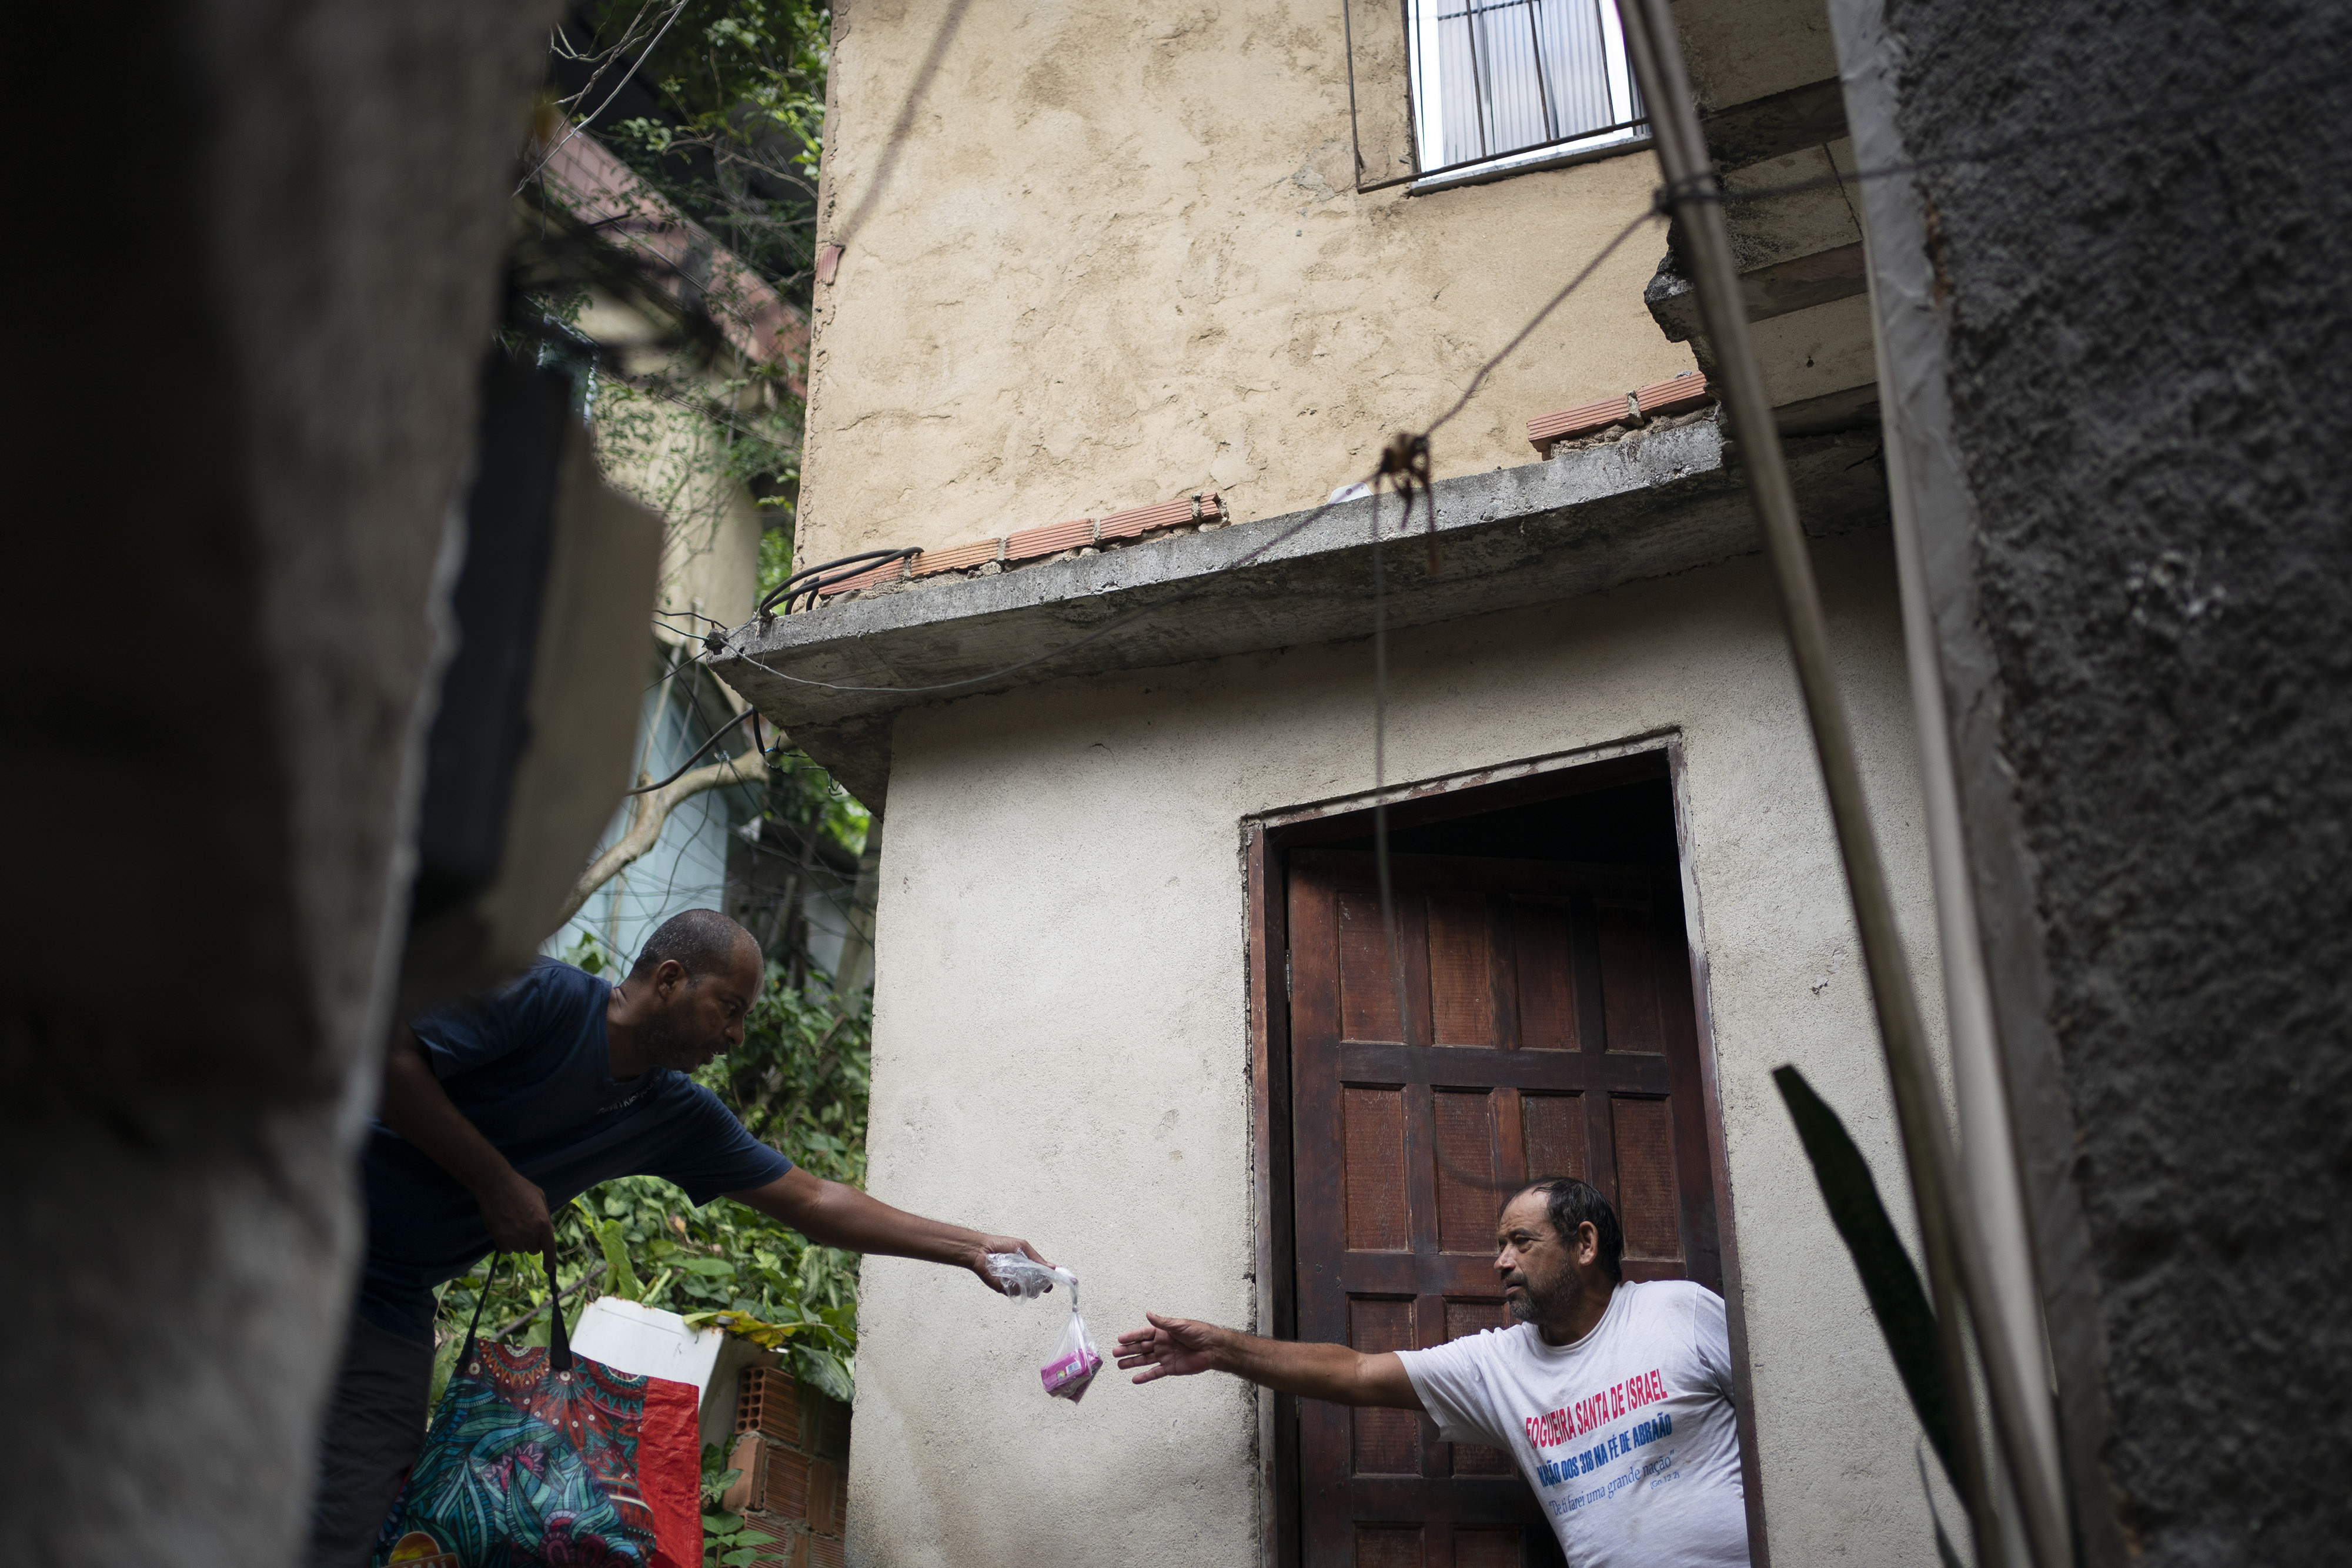 A local volunteer hands soap to a resident in an effort to avoid the spread of the new coronavirus in the Rocinha slum of Rio de Janeiro, Brazil, Tuesday, March 24, 2020. (AP Photo/Leo Correa)